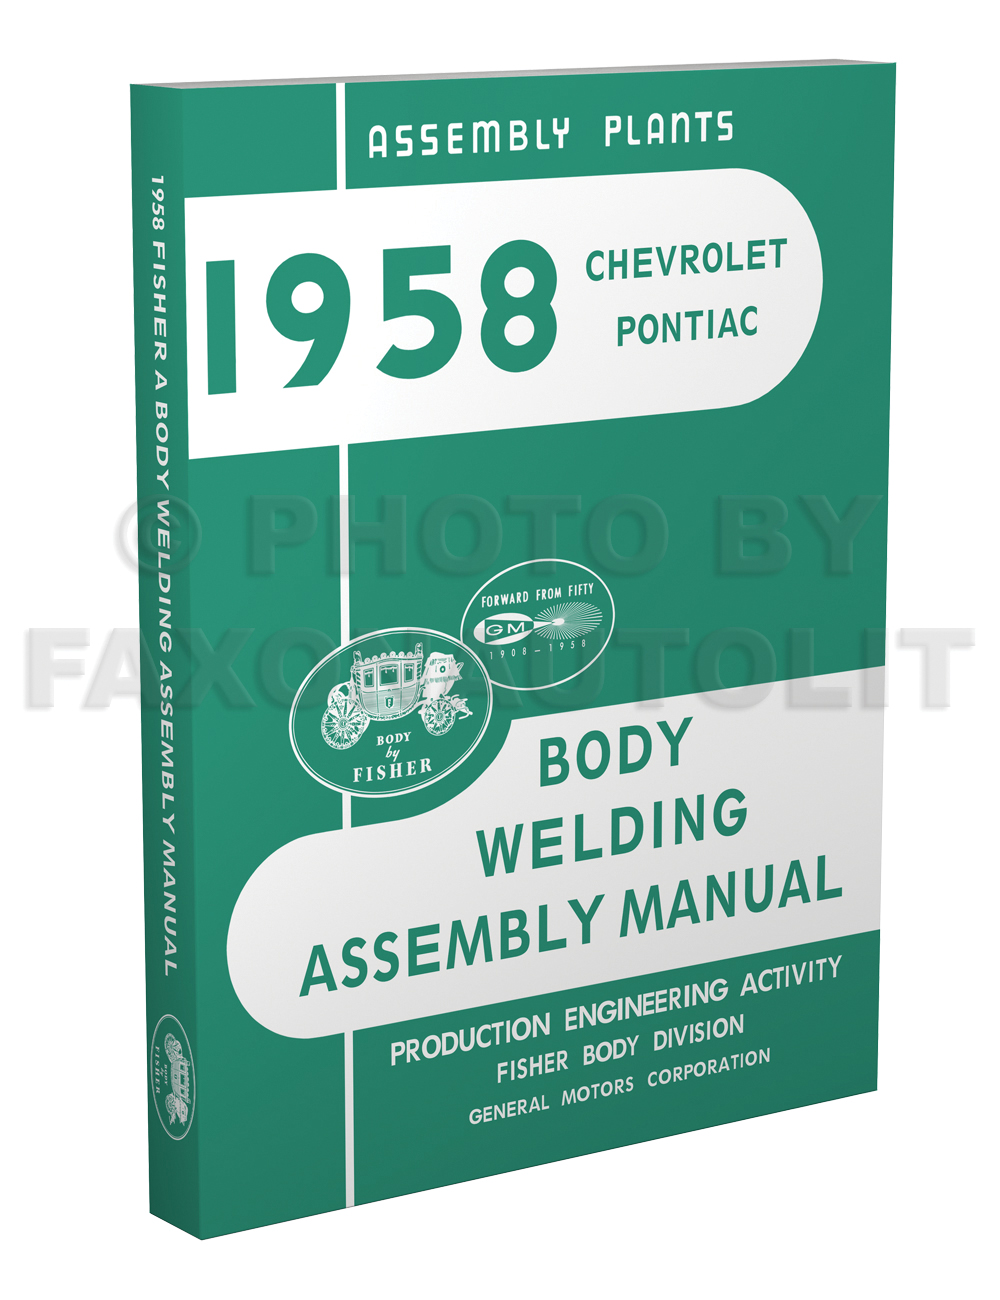 hight resolution of 1958 fisher body welding assembly manual reprint chevrolet pontiac